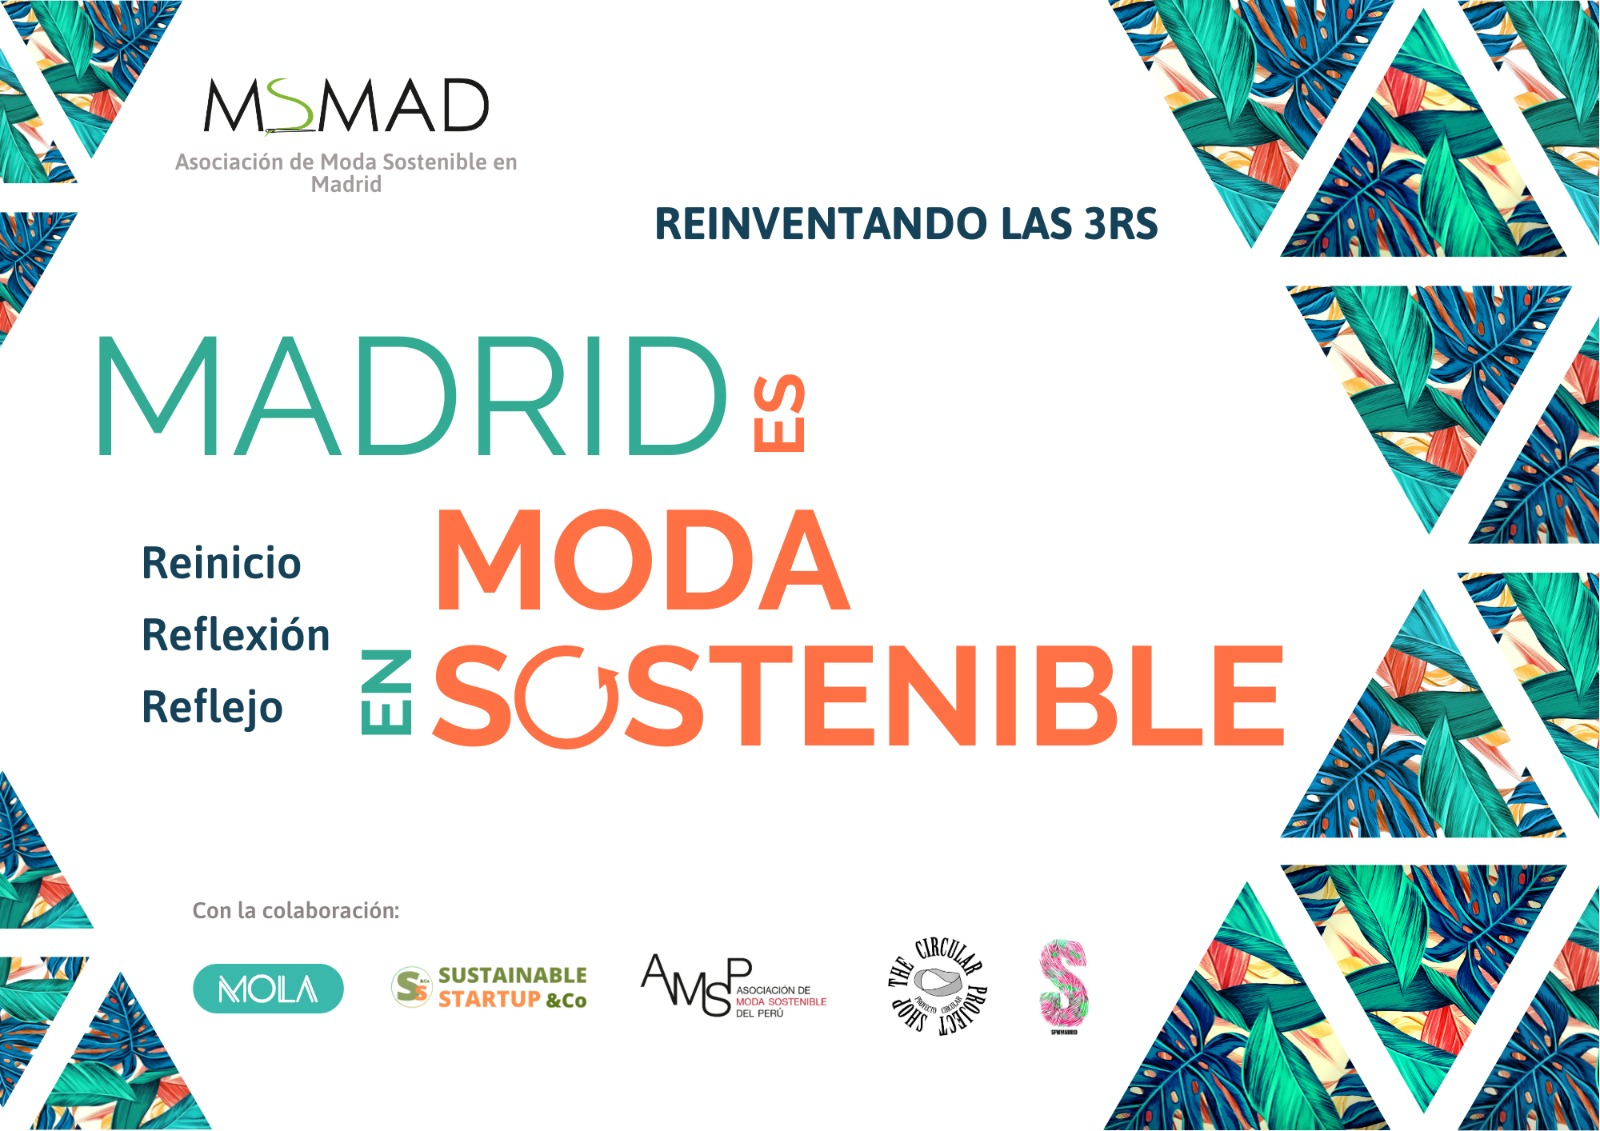 Madrid es Moda Sostenible